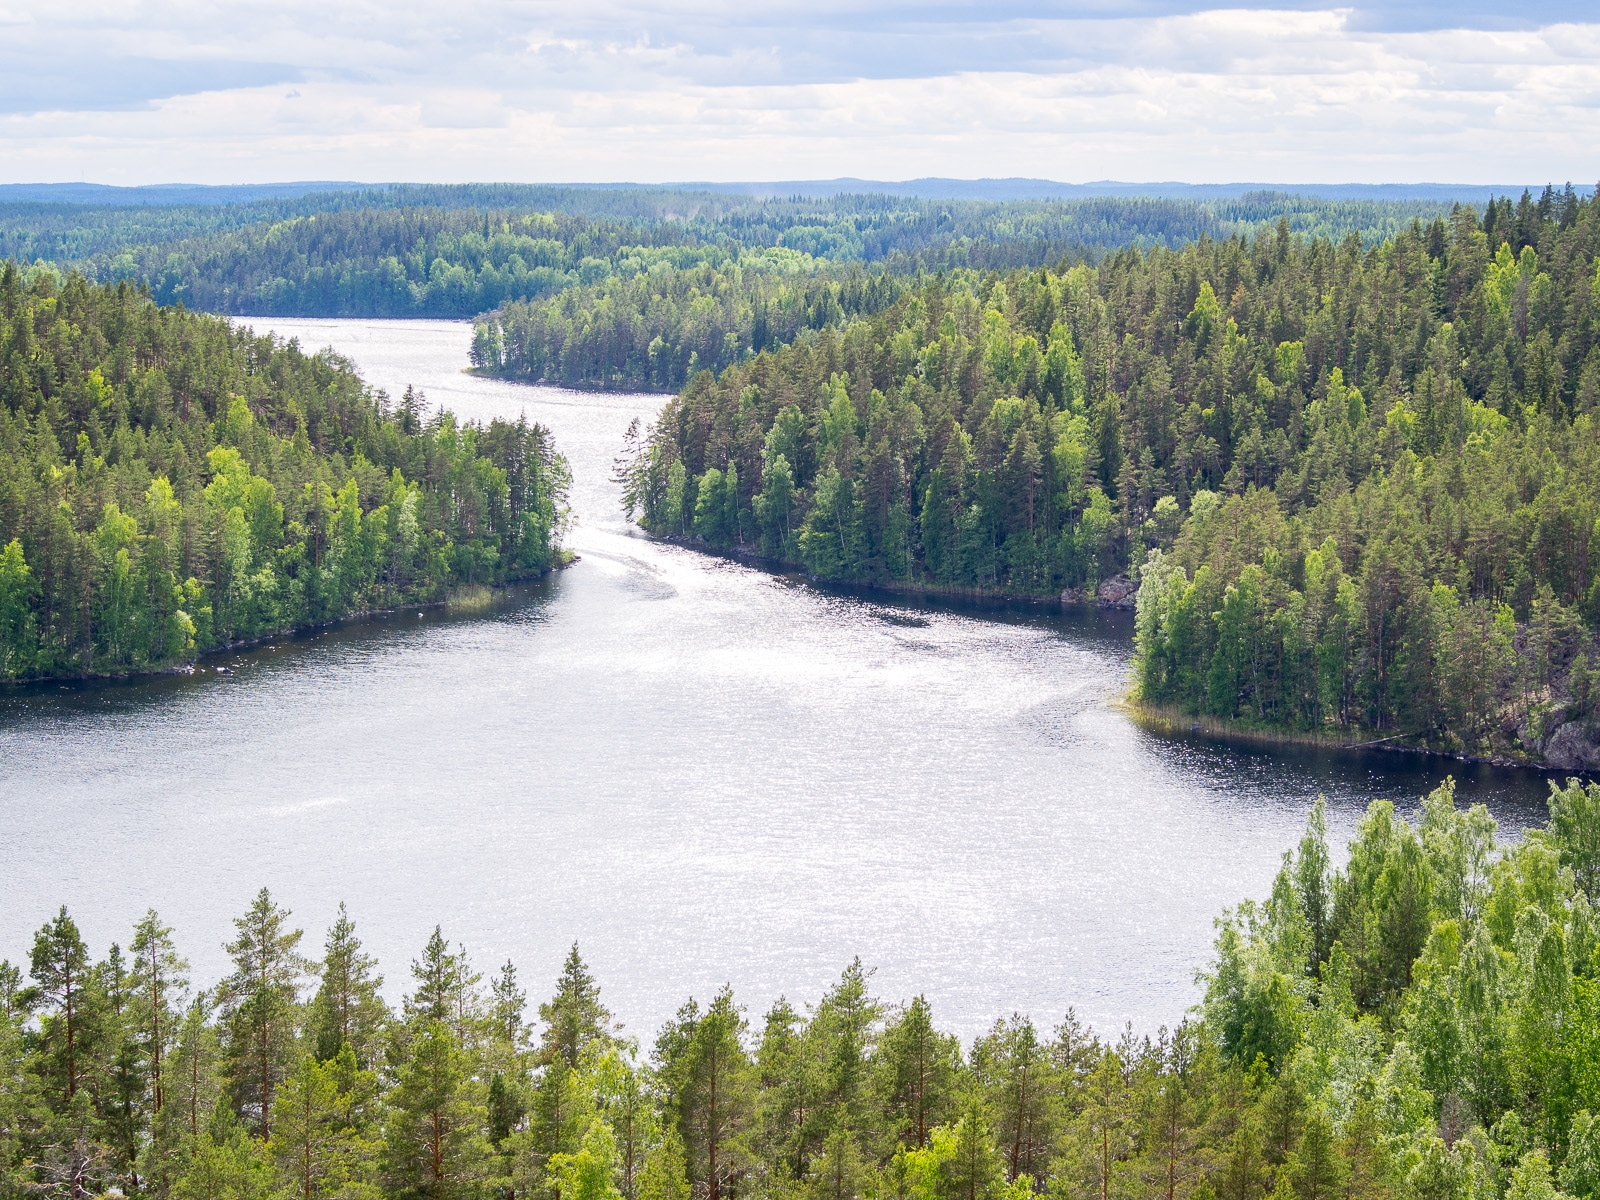 Repovesi National Park in summer. Stunning views of Southern Finland. Nature near Helsinki, Finland.